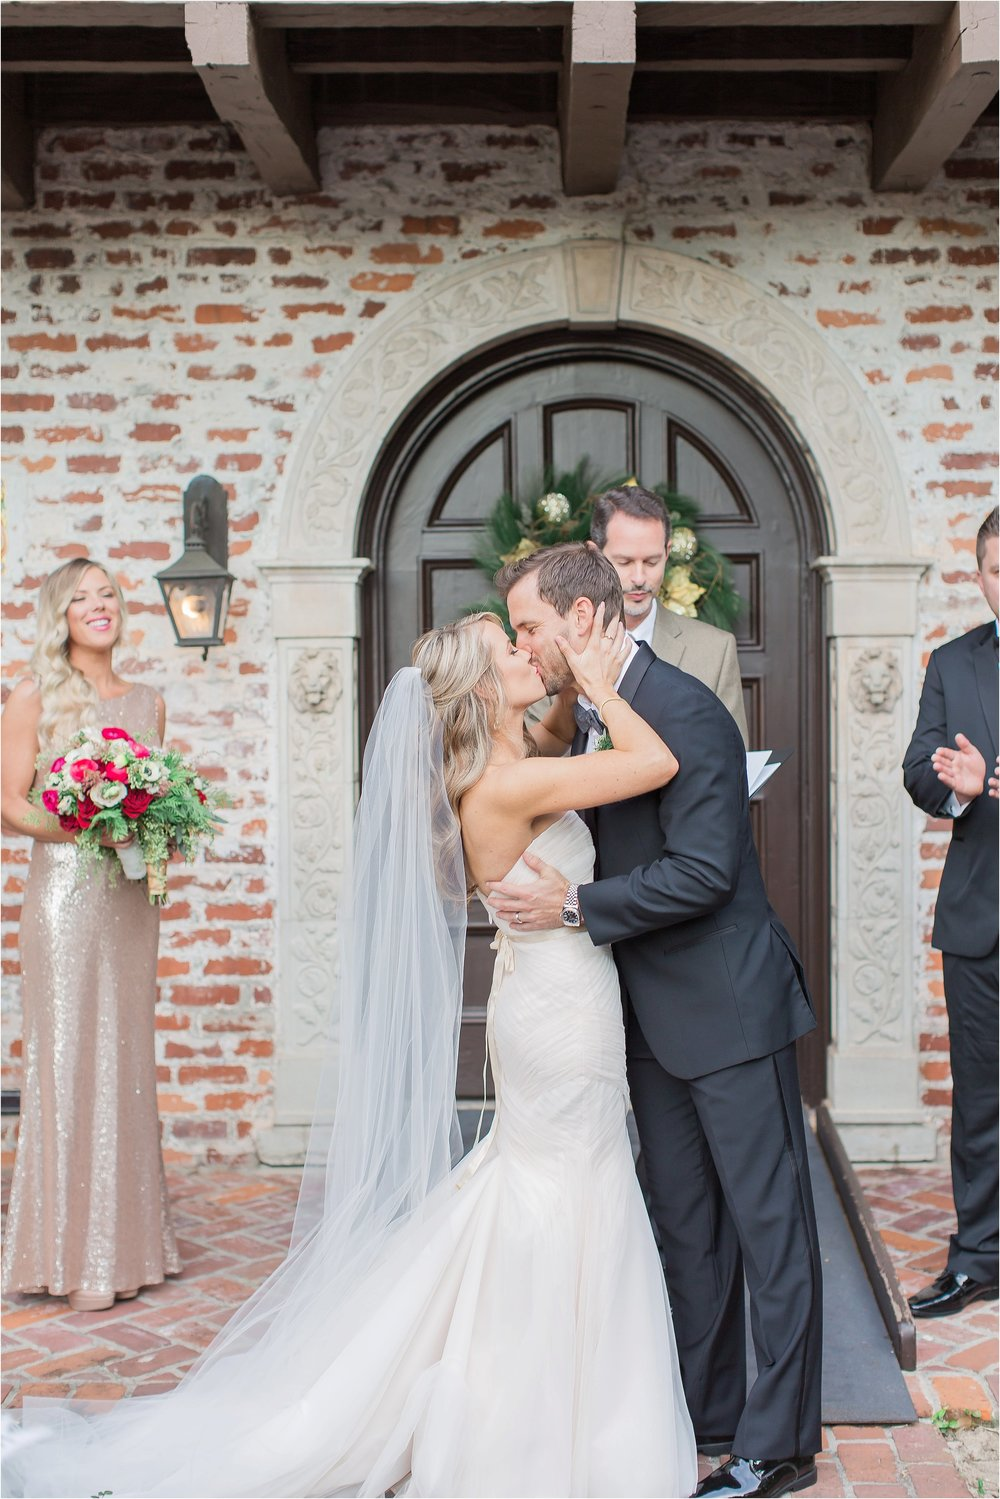 Casa_Feliz_Alfond_Inn_Winter_WeddingndhamGrandWedding_0090.jpg